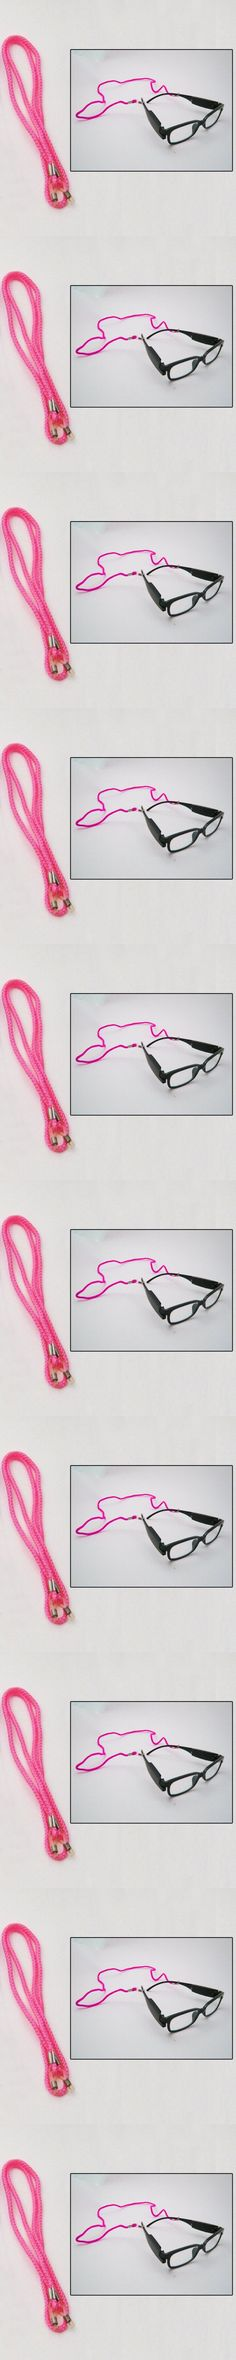 195a45c75a0 Sunglass Eyewear Braided Nylon Neck Cord String Retainer Strap Lanyard  Holder Pk